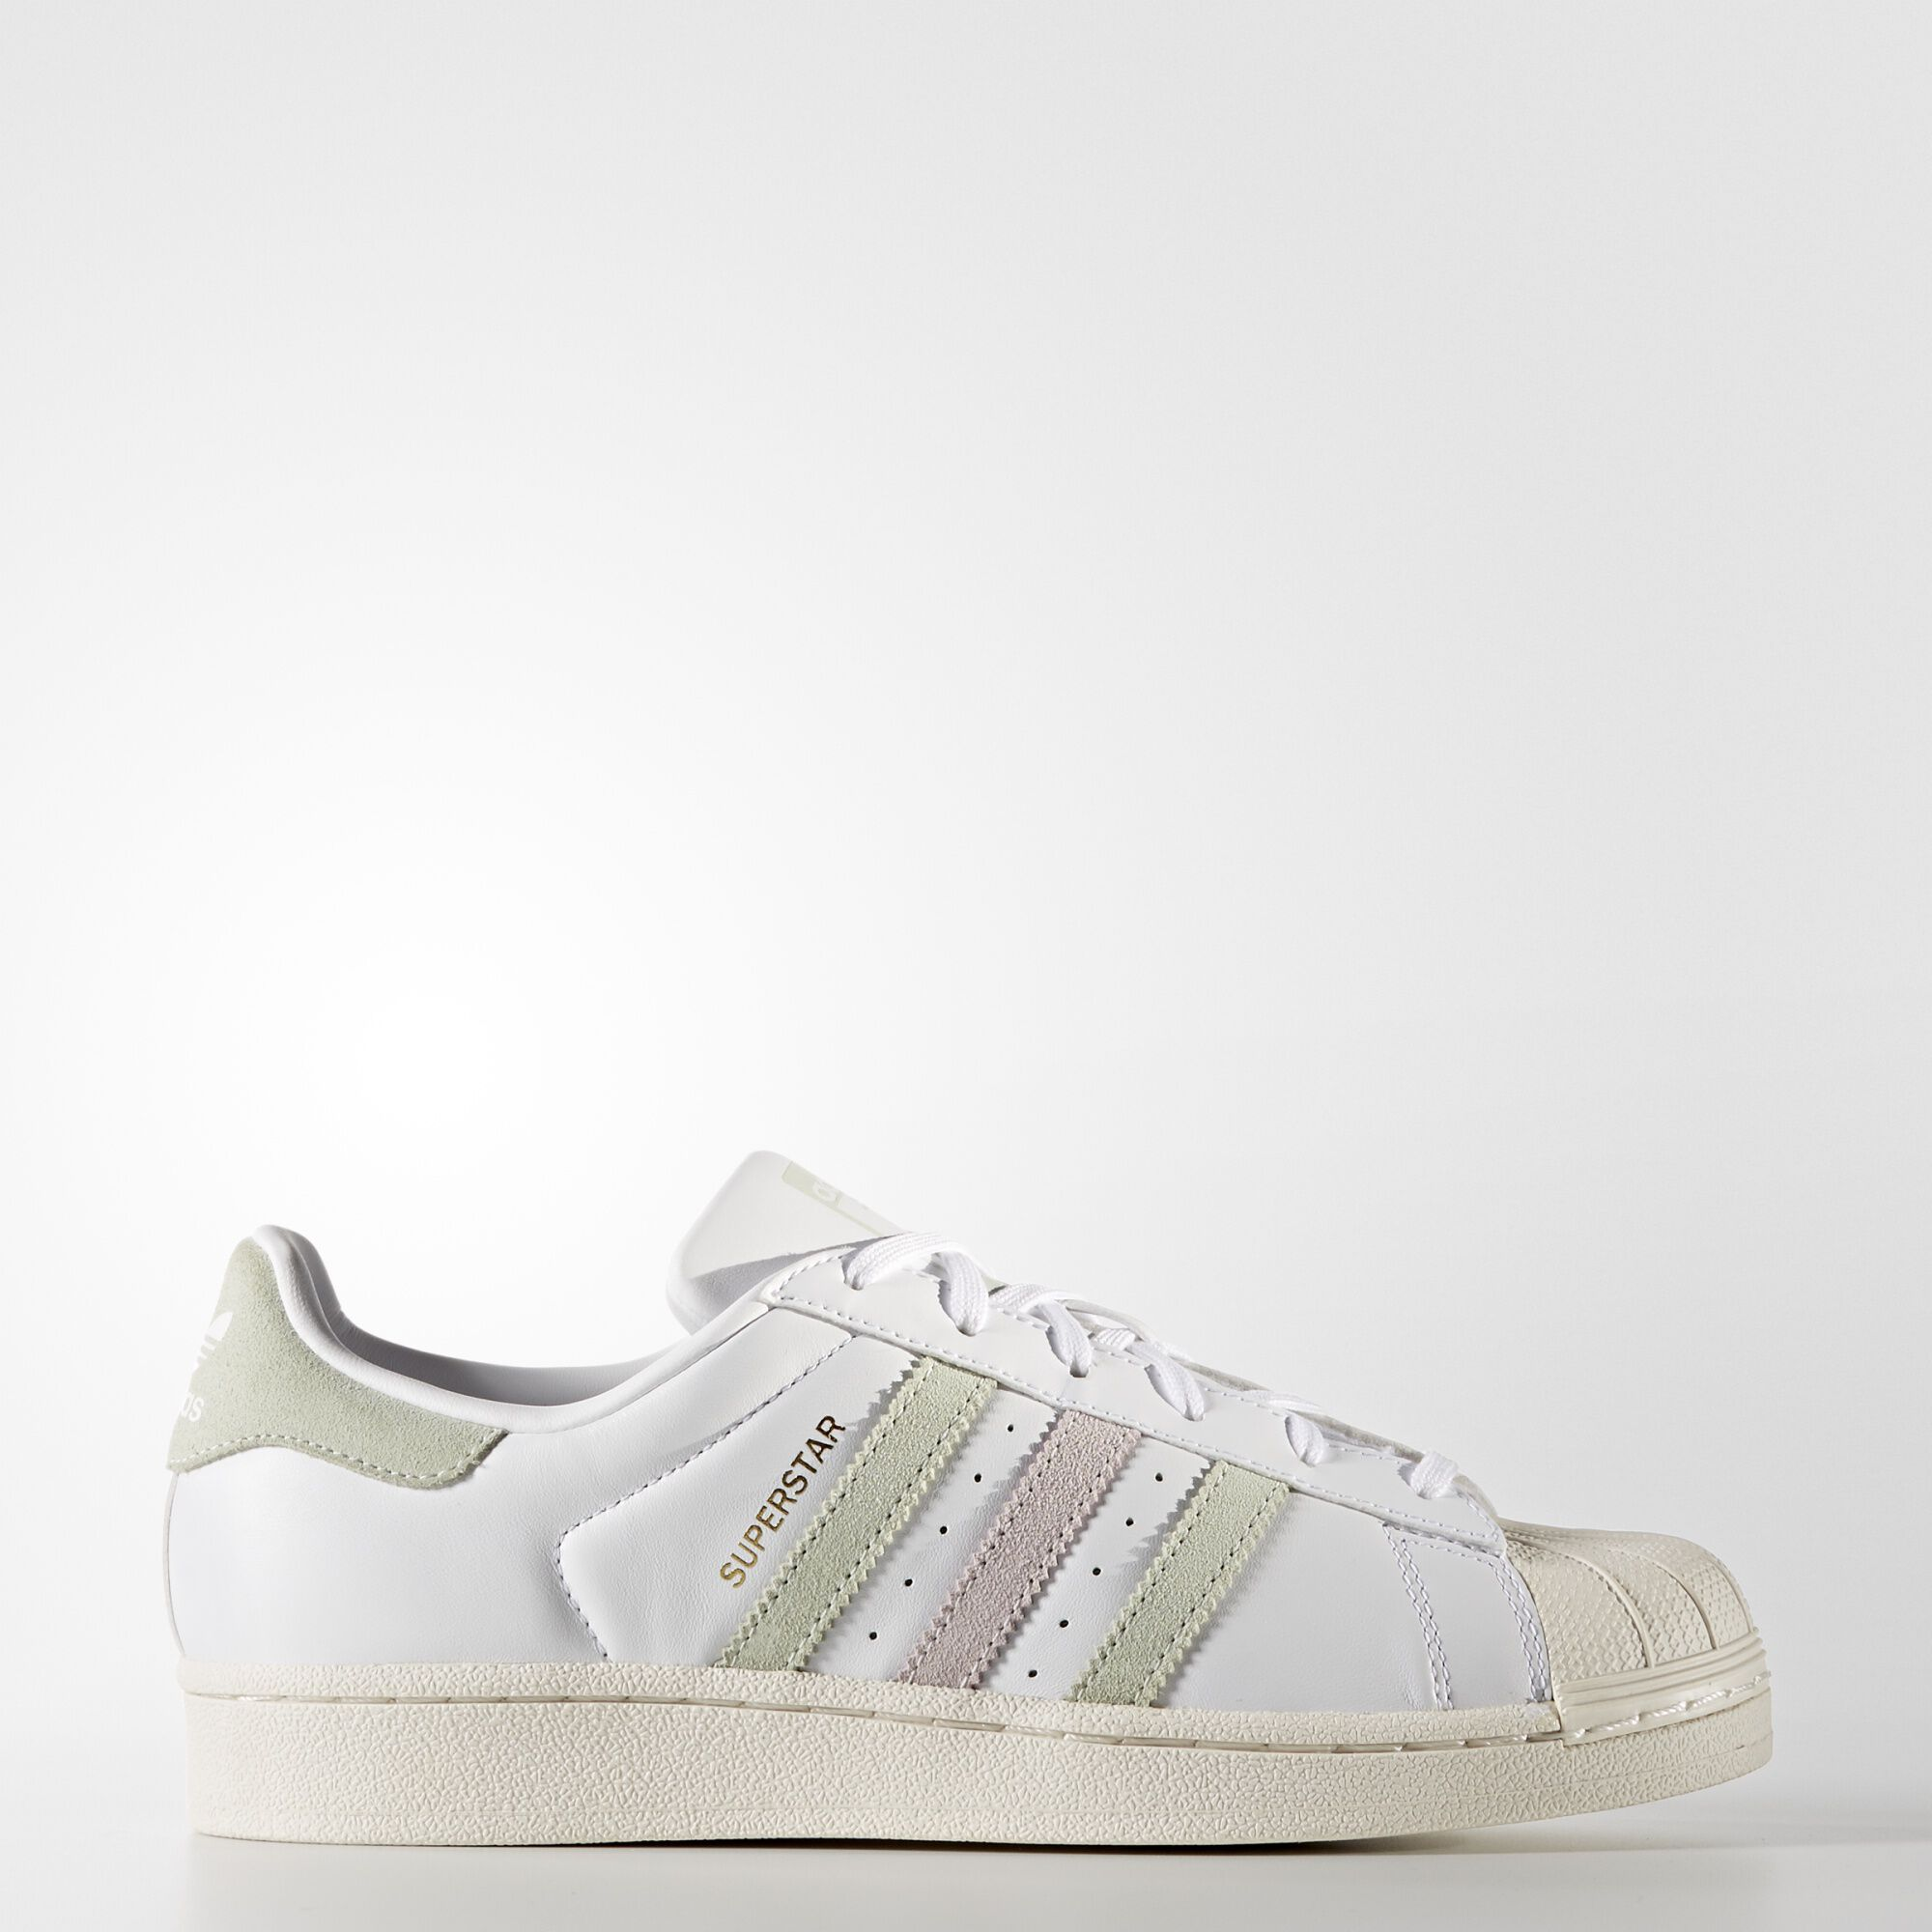 adidas Originals Superstar up W White Black Womens Wedges Shoes